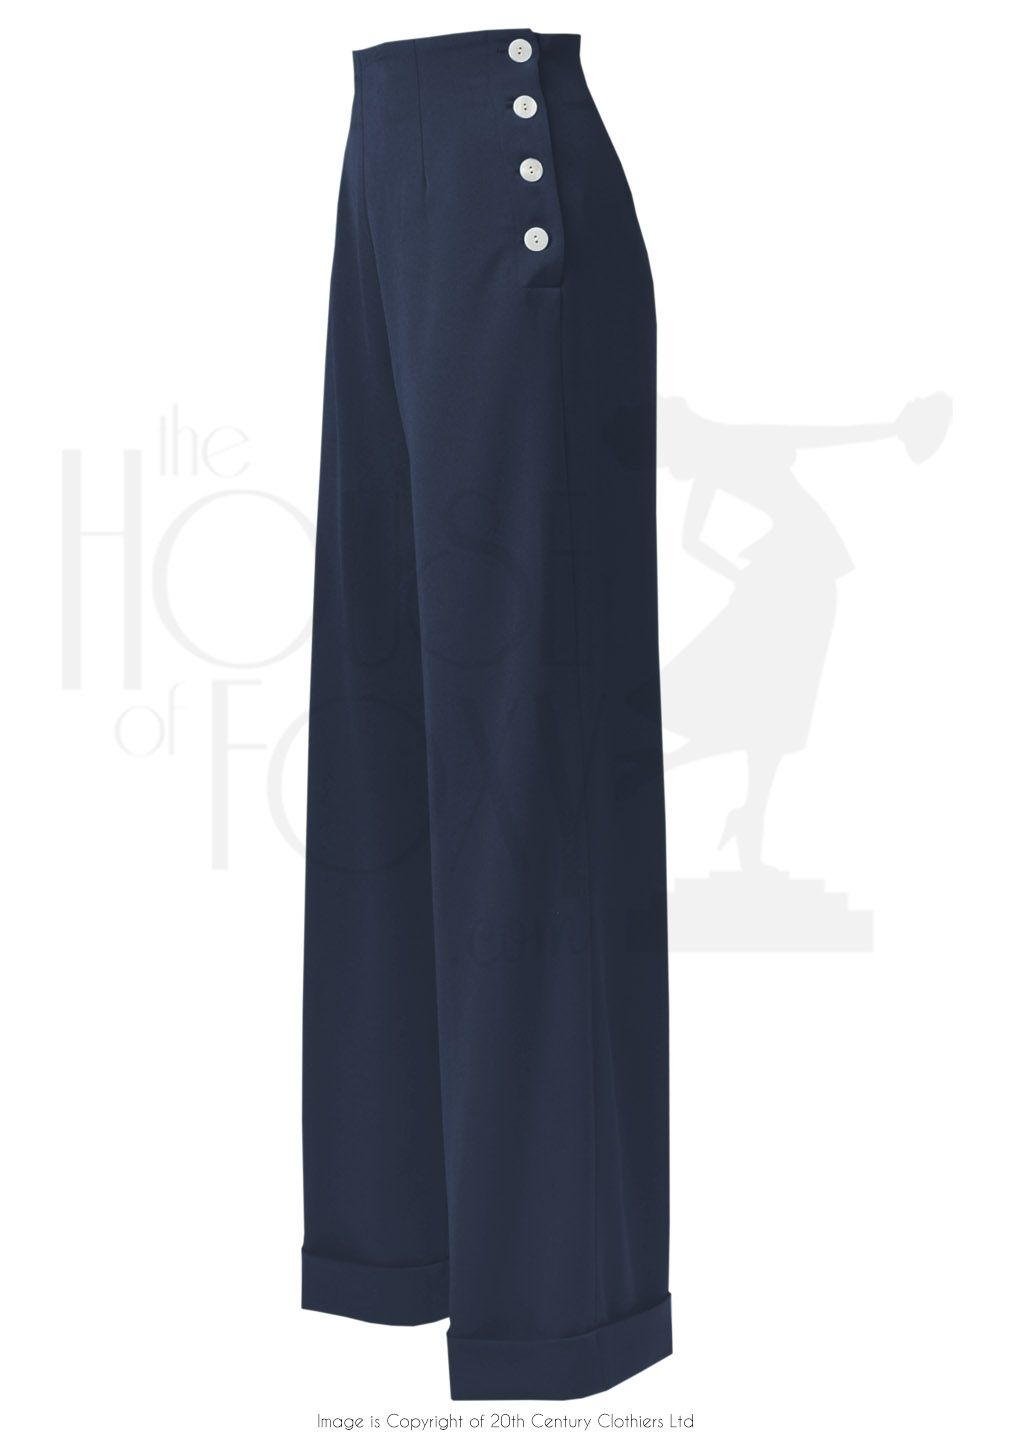 6e69f8d93c1f 1940s High Waisted Swing Wide Leg Trousers in Navy Byxor Outfit, Retro  Mode, T